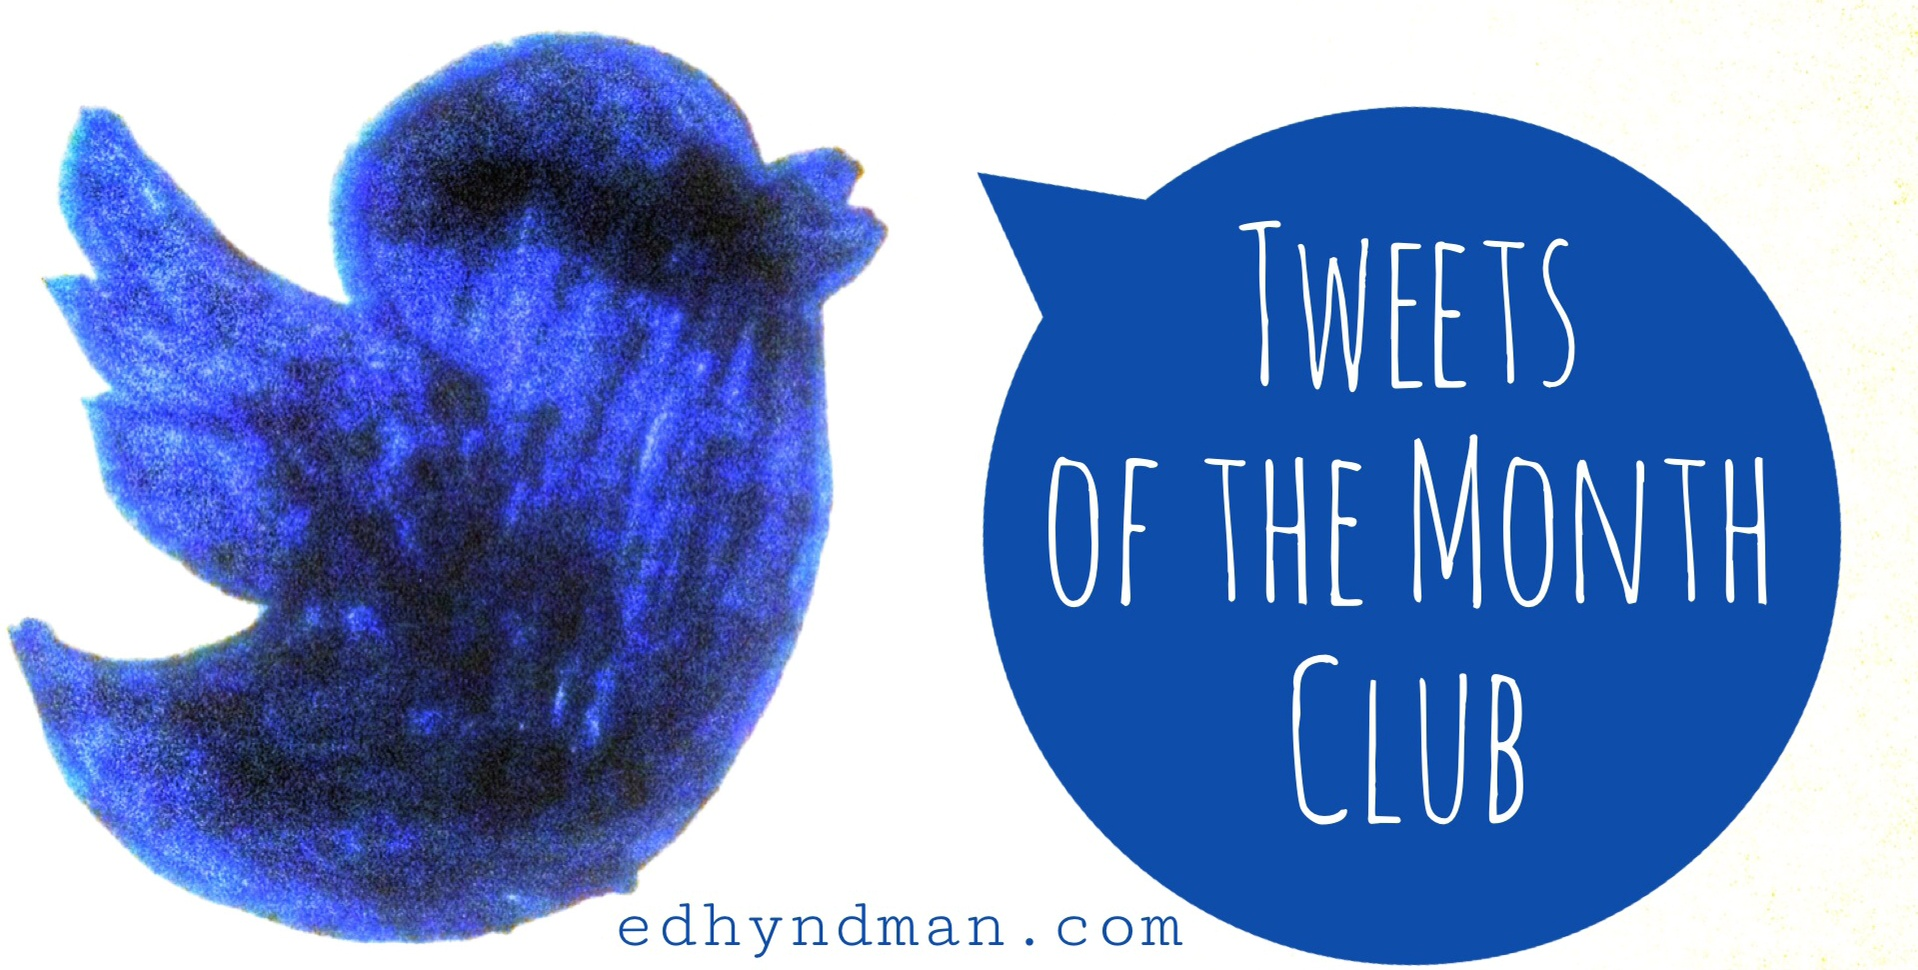 Tweets of the Month Club | May 2016